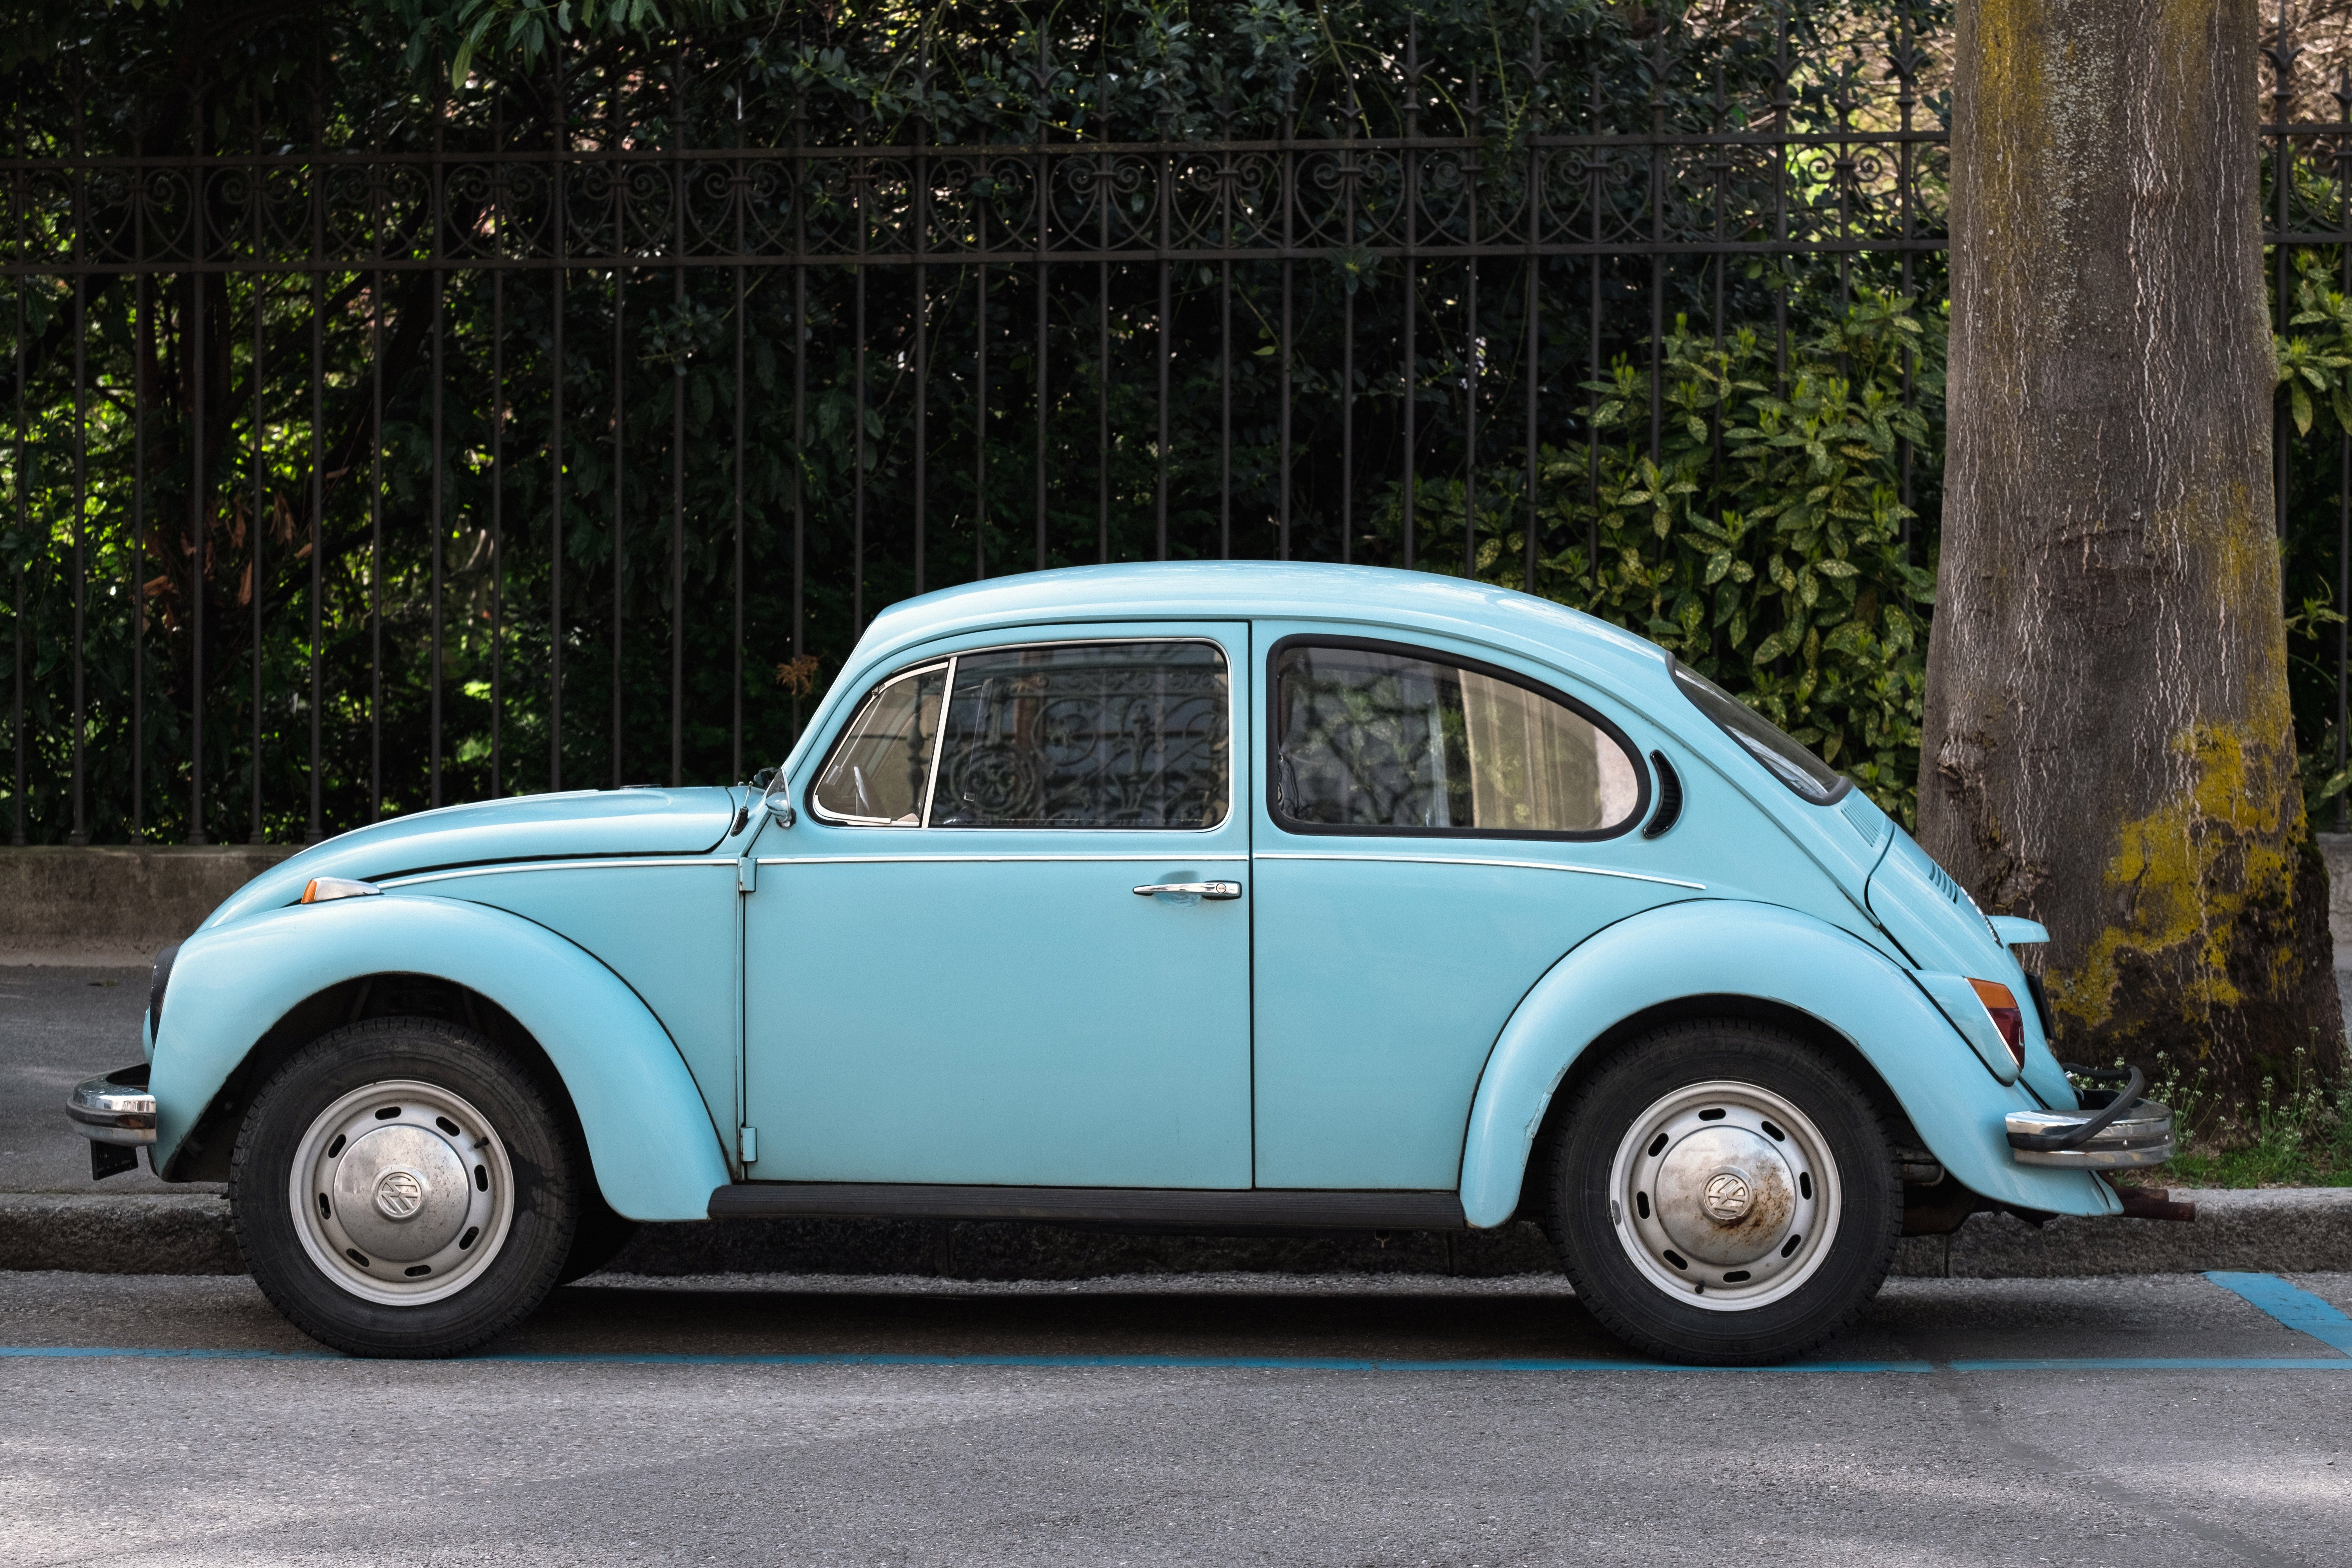 A blue Volkswagen Beetle. | Source: Samuel Zeller/Unsplash